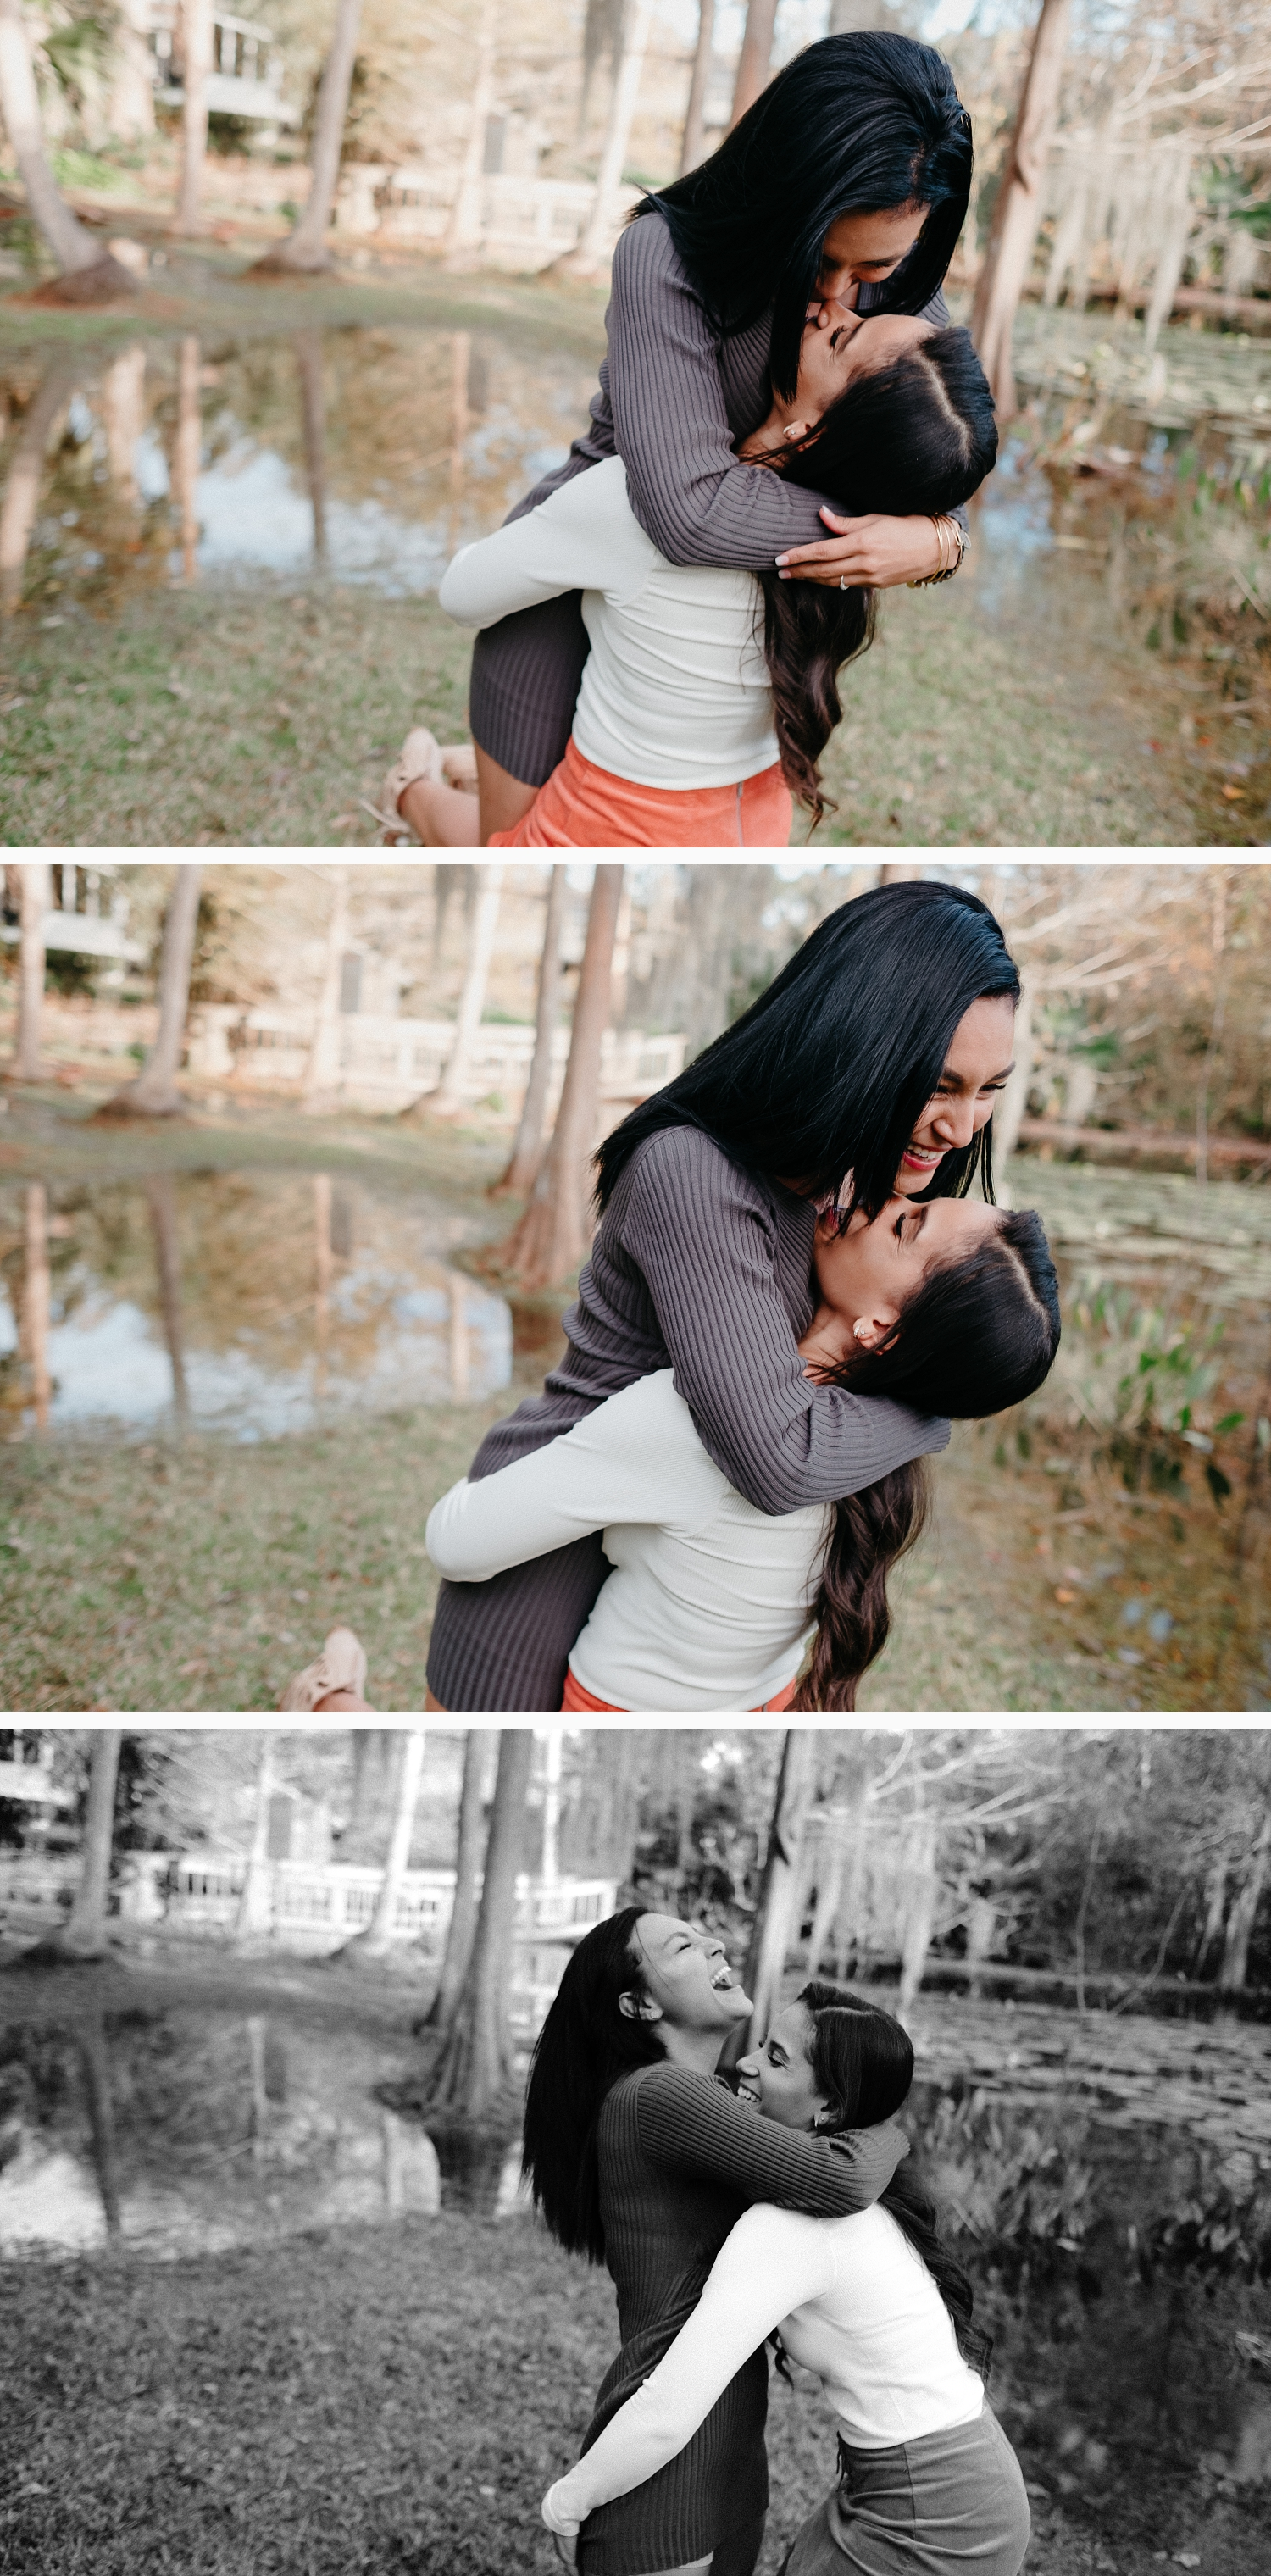 Rubie-And-Stefany-Orlando-Surprise-Proposal-_0027.jpg